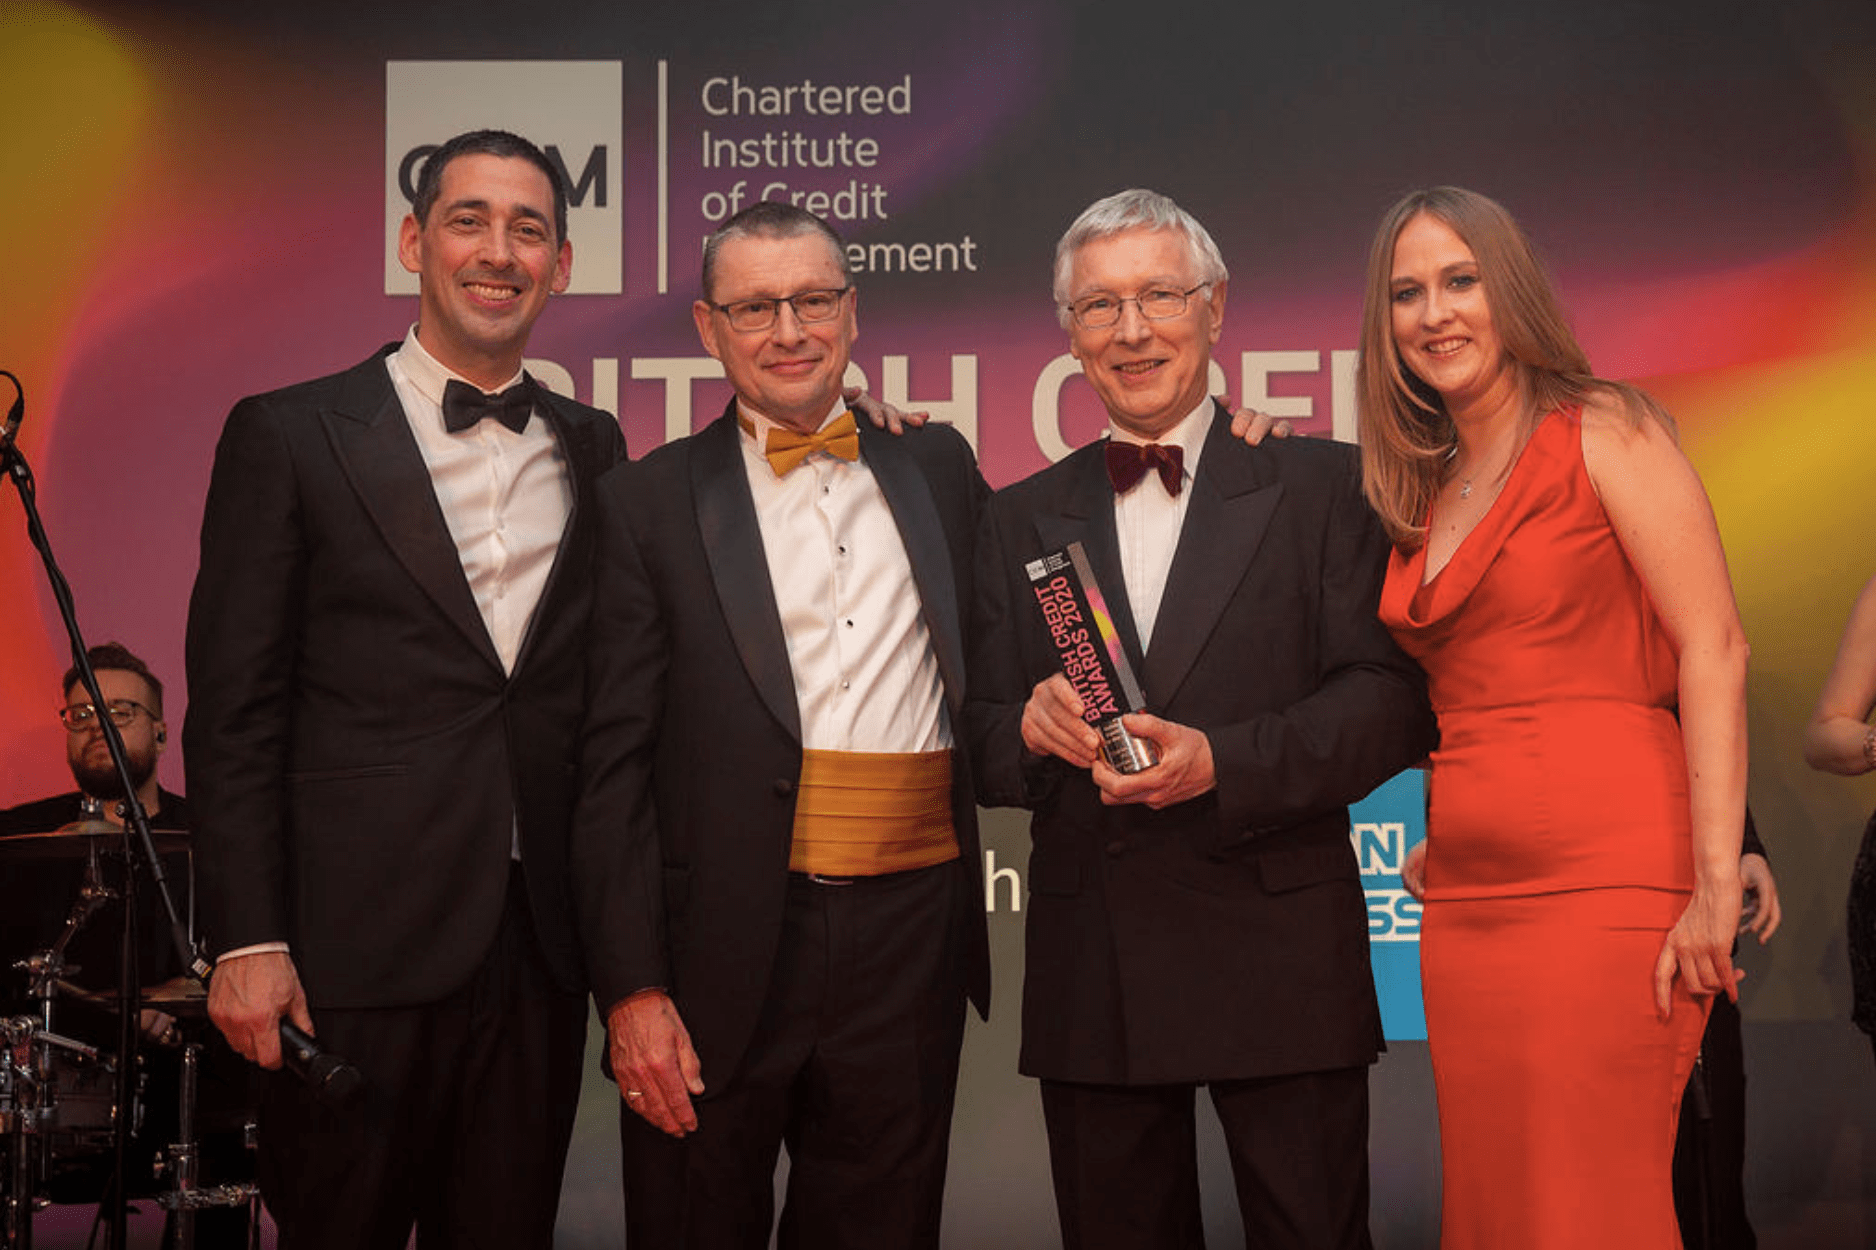 Charles Wilson receiving Outstanding Contribution to the Industry Award